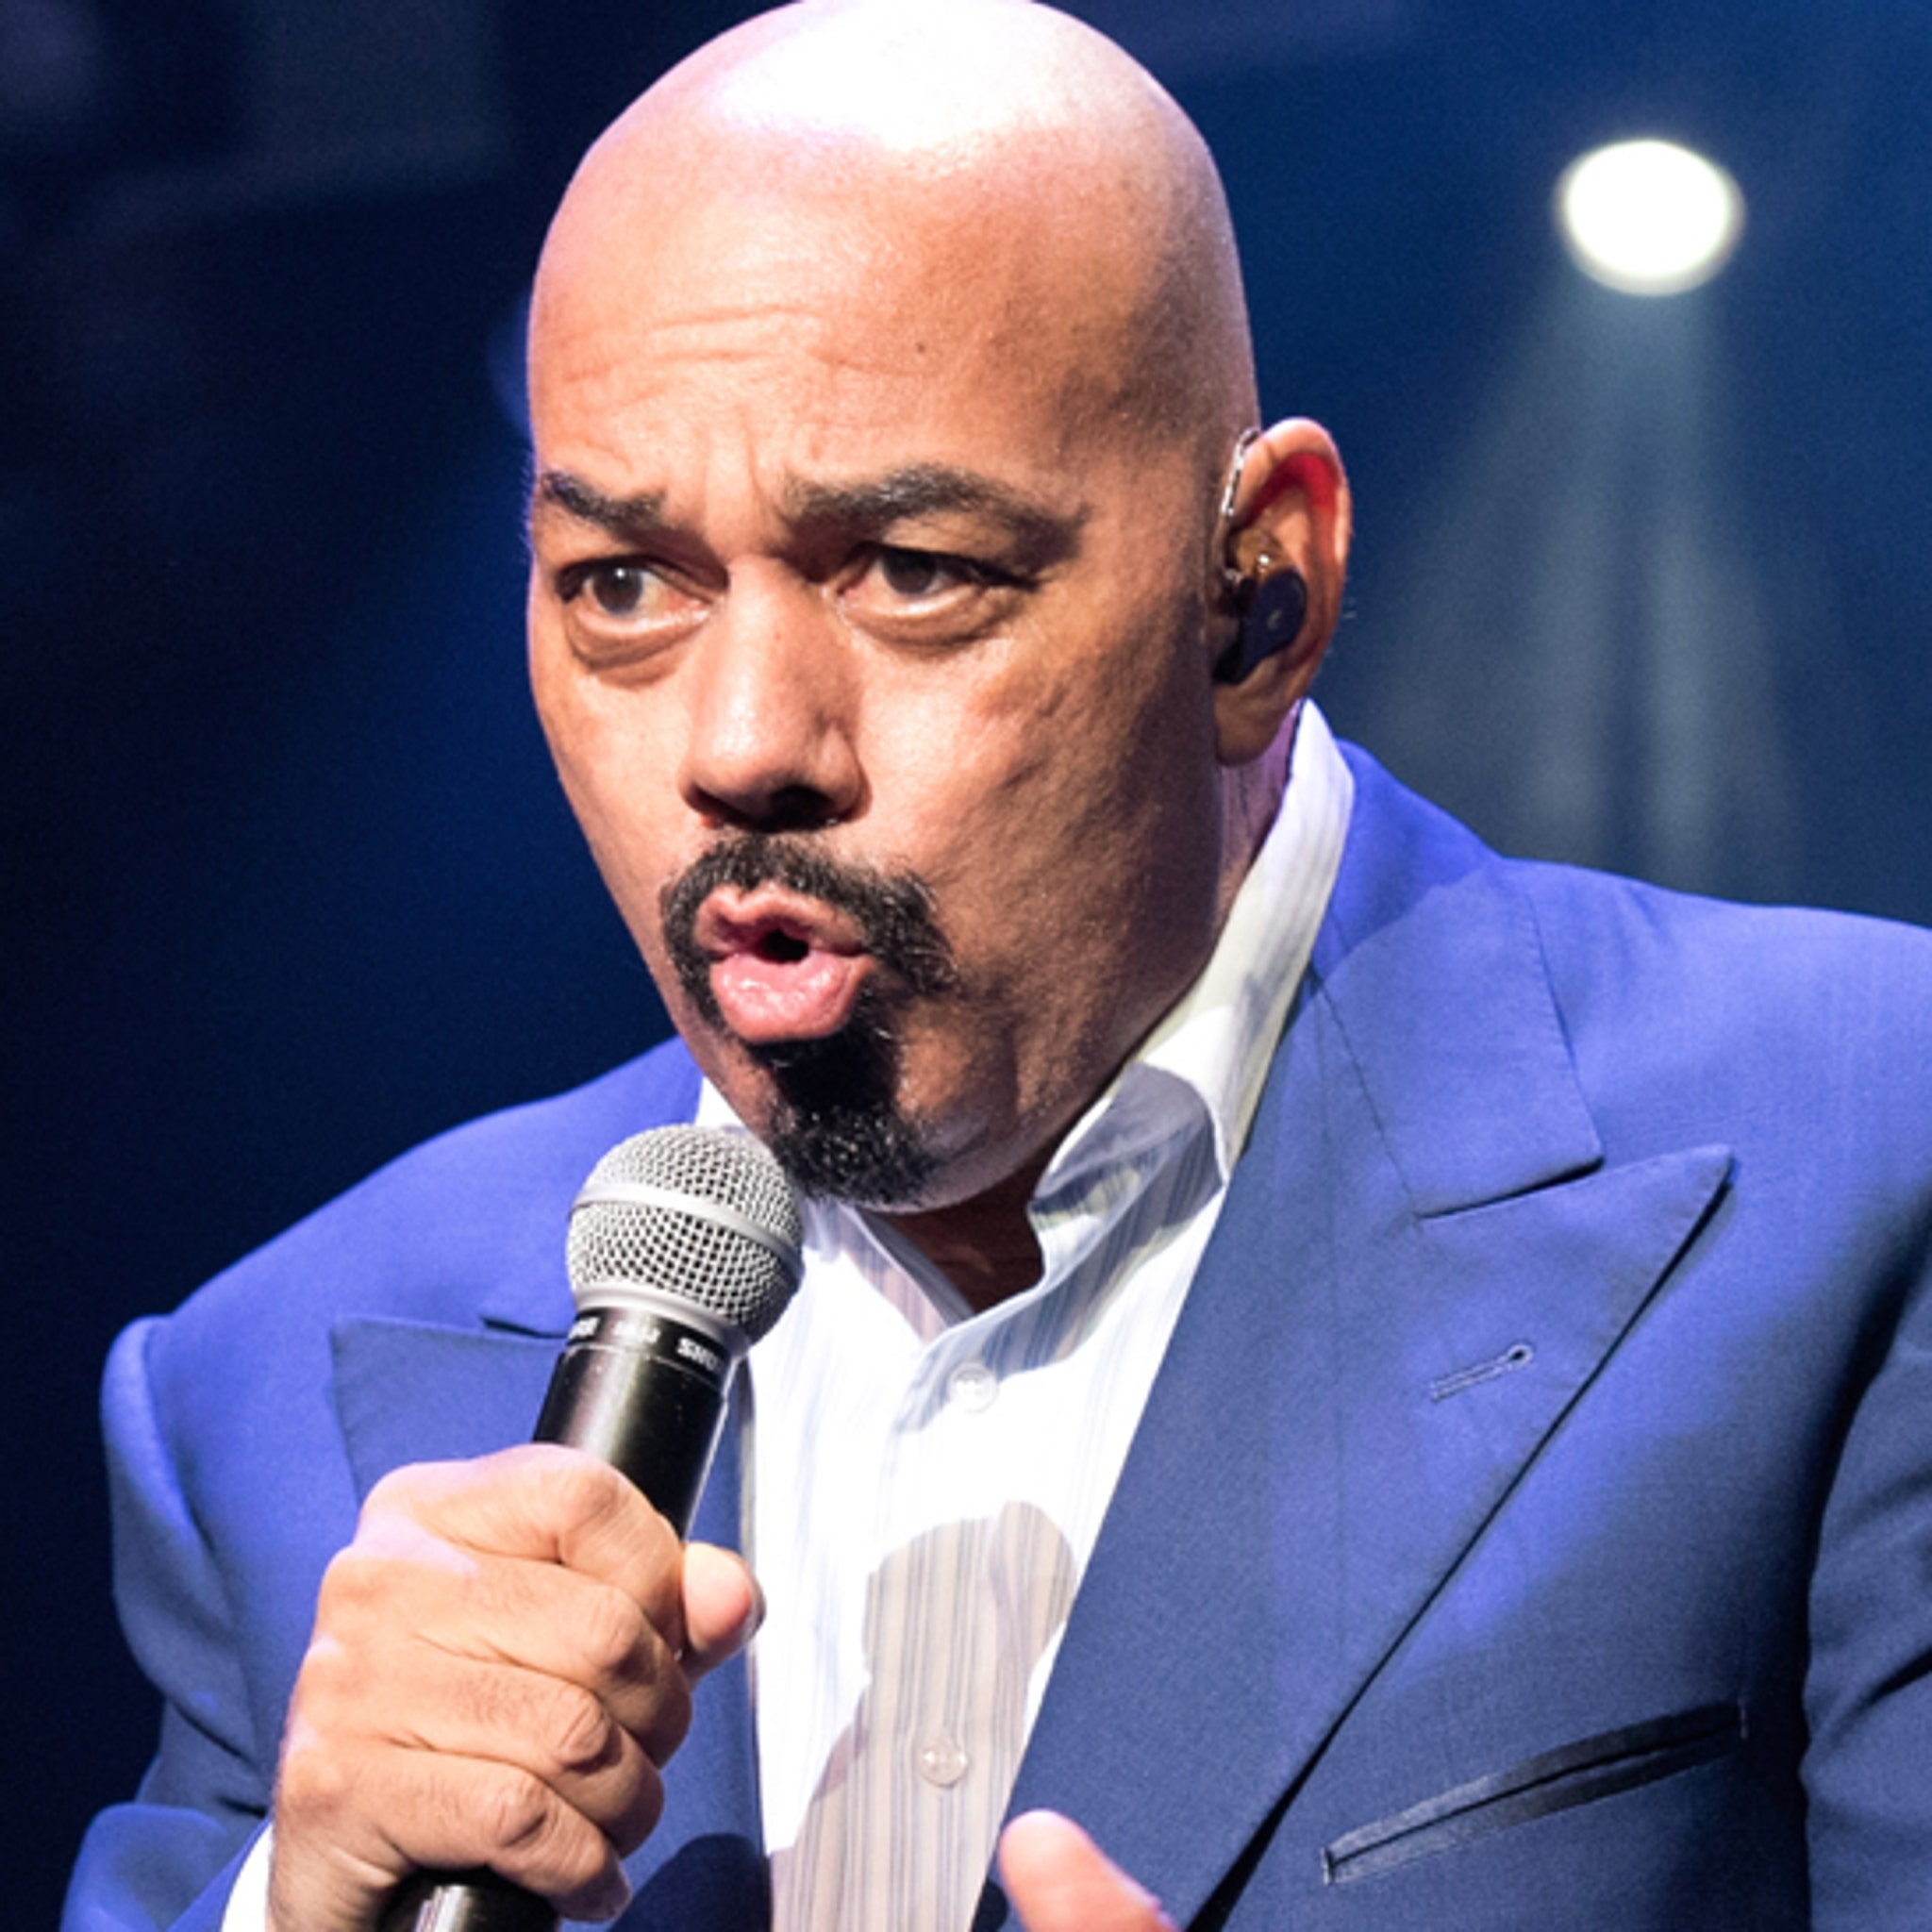 James Ingram Dead at 66 From Brain Cancer